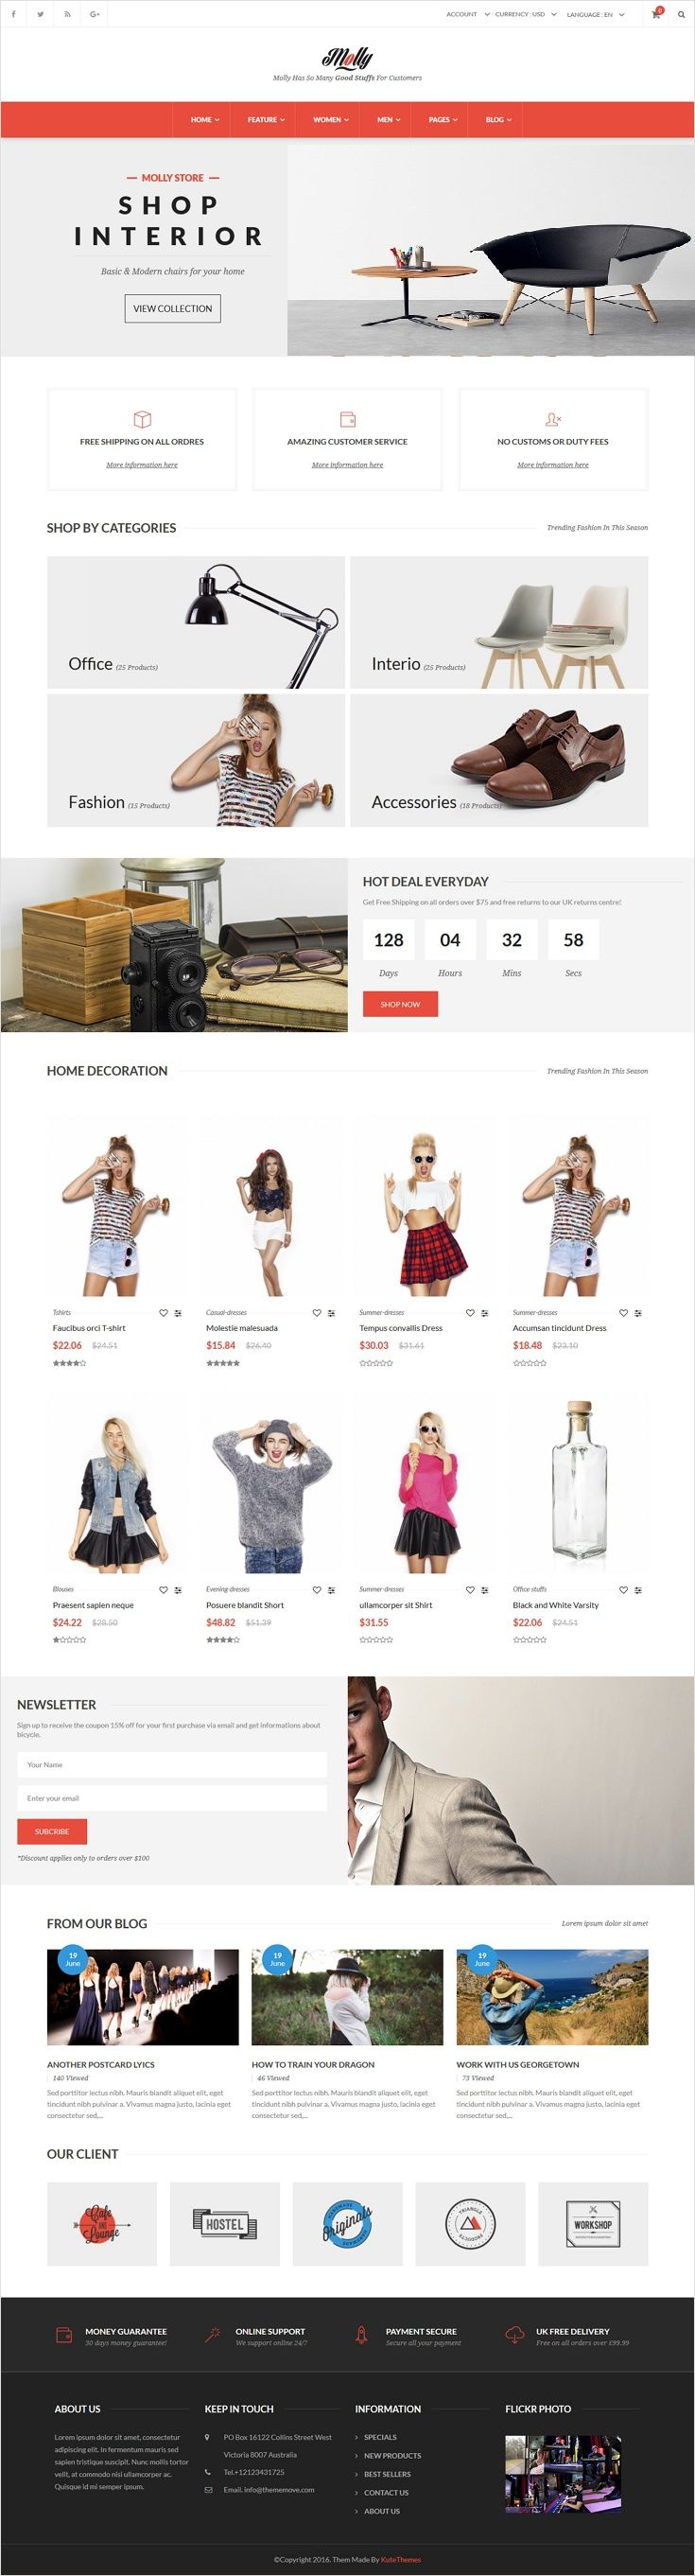 The 8 best UI UX Design My Work images on Pinterest